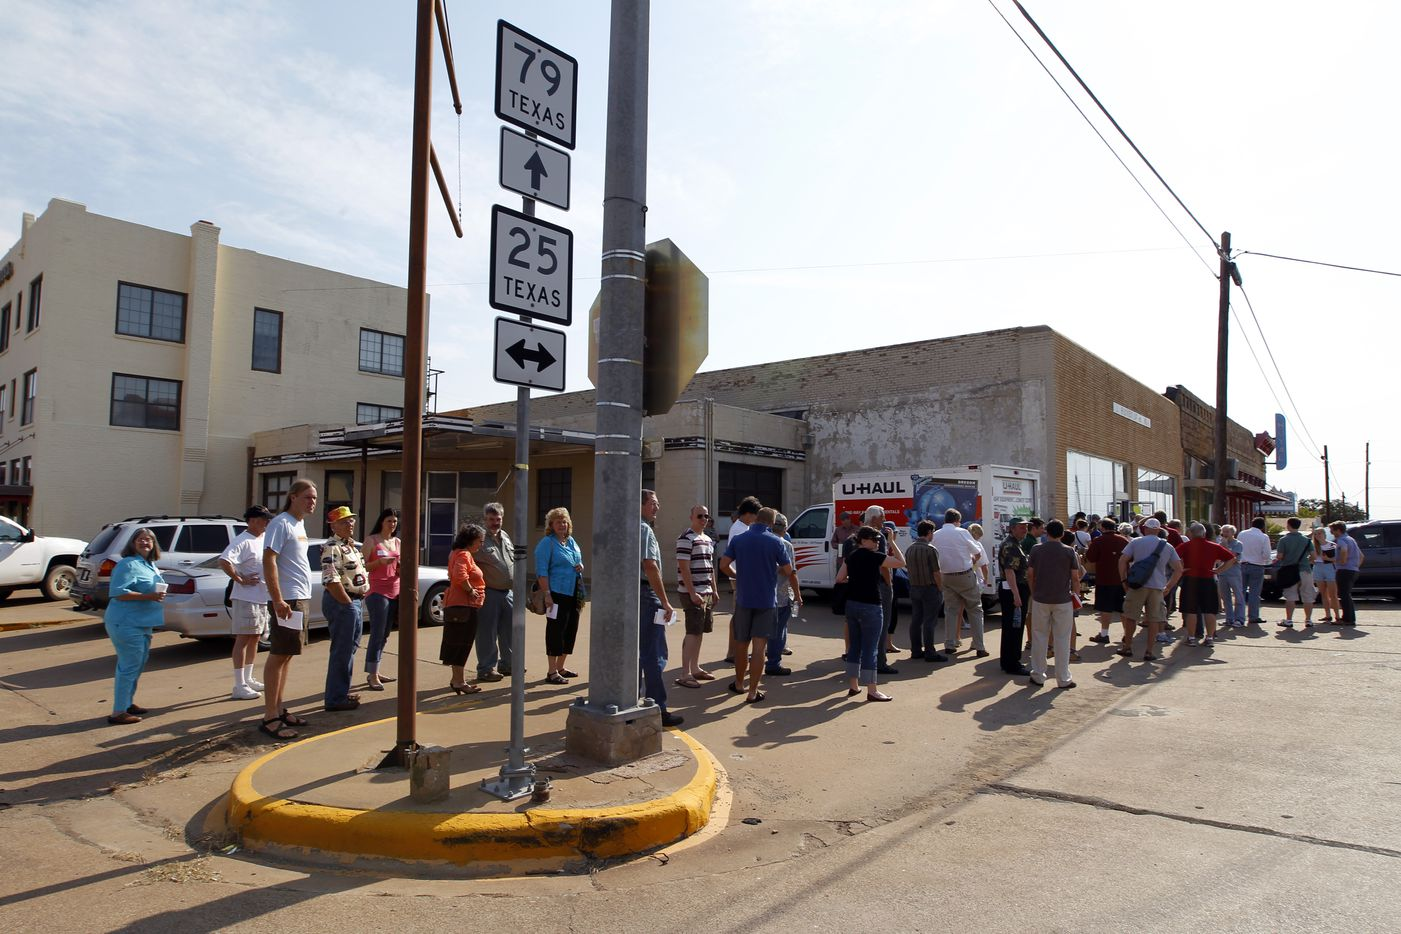 Book buyers lined up to bid on Larry McMurtry's private collection of books in downtown Archer City, in August, 2012.